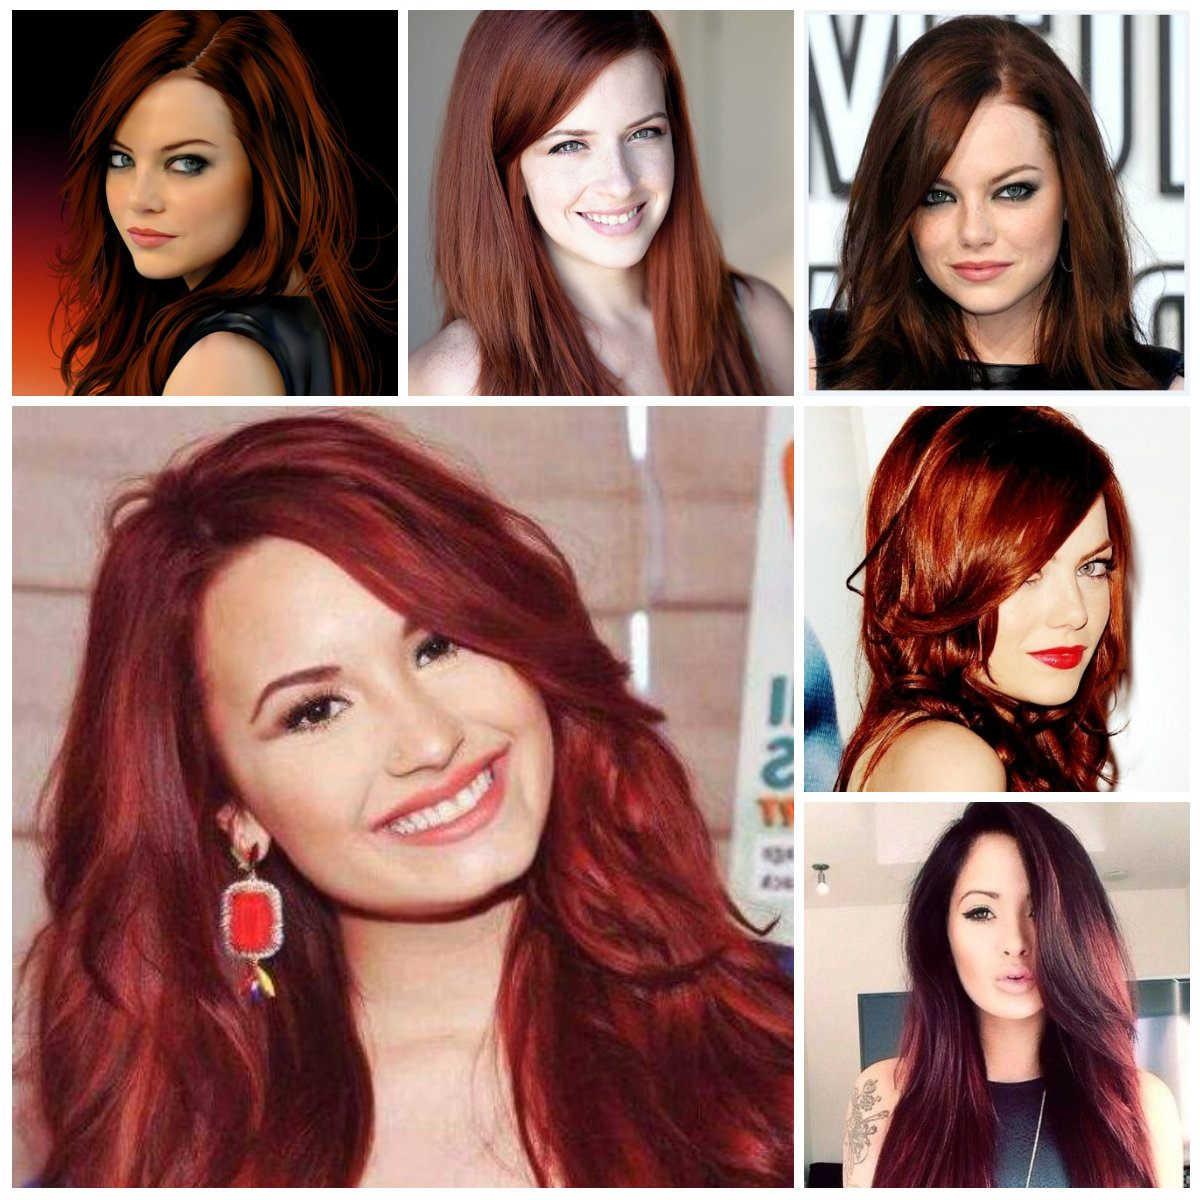 Auburn Hair Colors For 2019 – Trendy Hairstyles 2019 For Long With Regard To Auburn Short Hairstyles (Gallery 18 of 25)